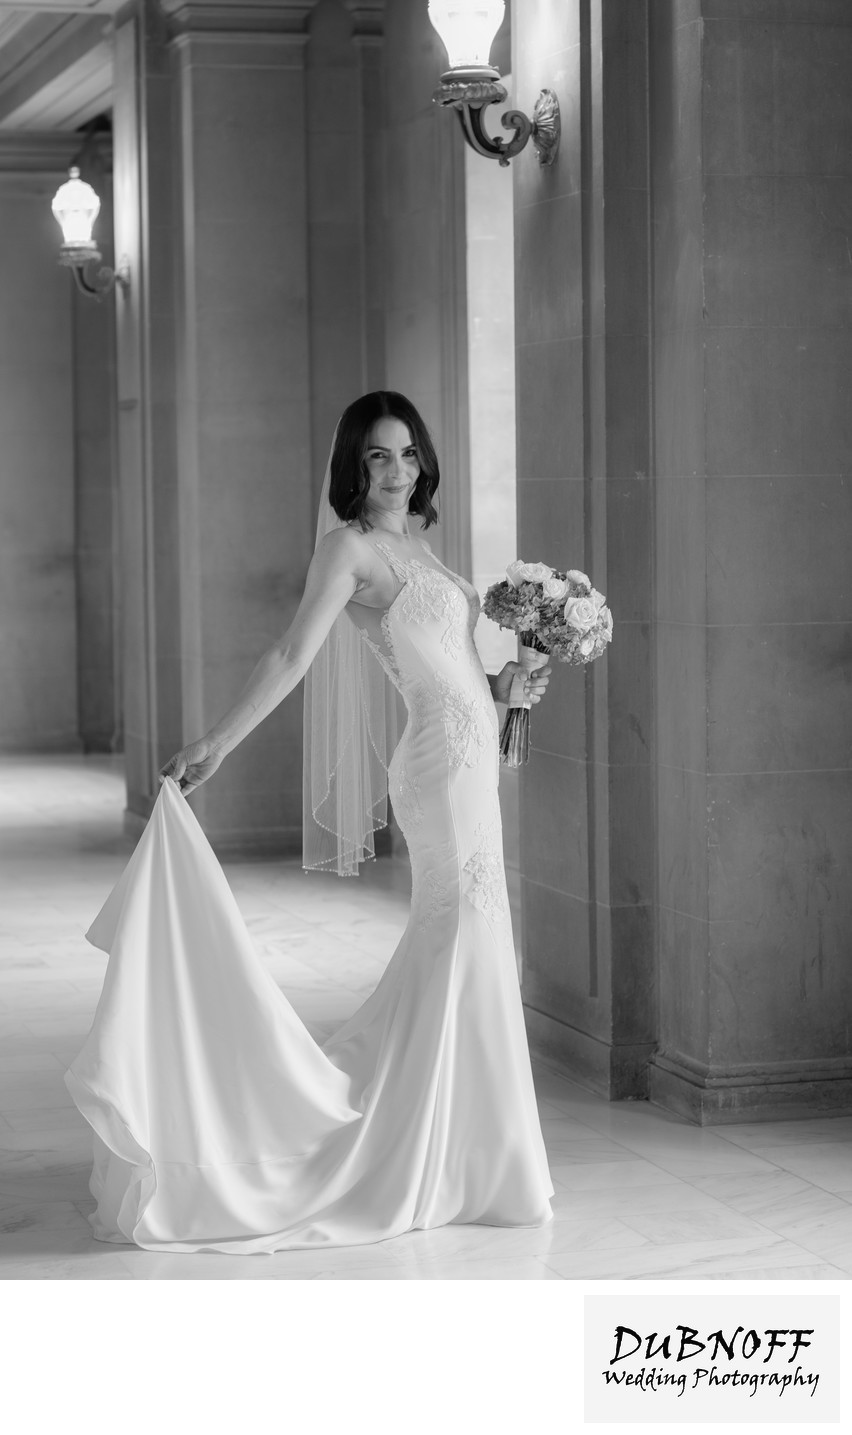 San Francisco City Hall Wedding Photographers - Bride with Train